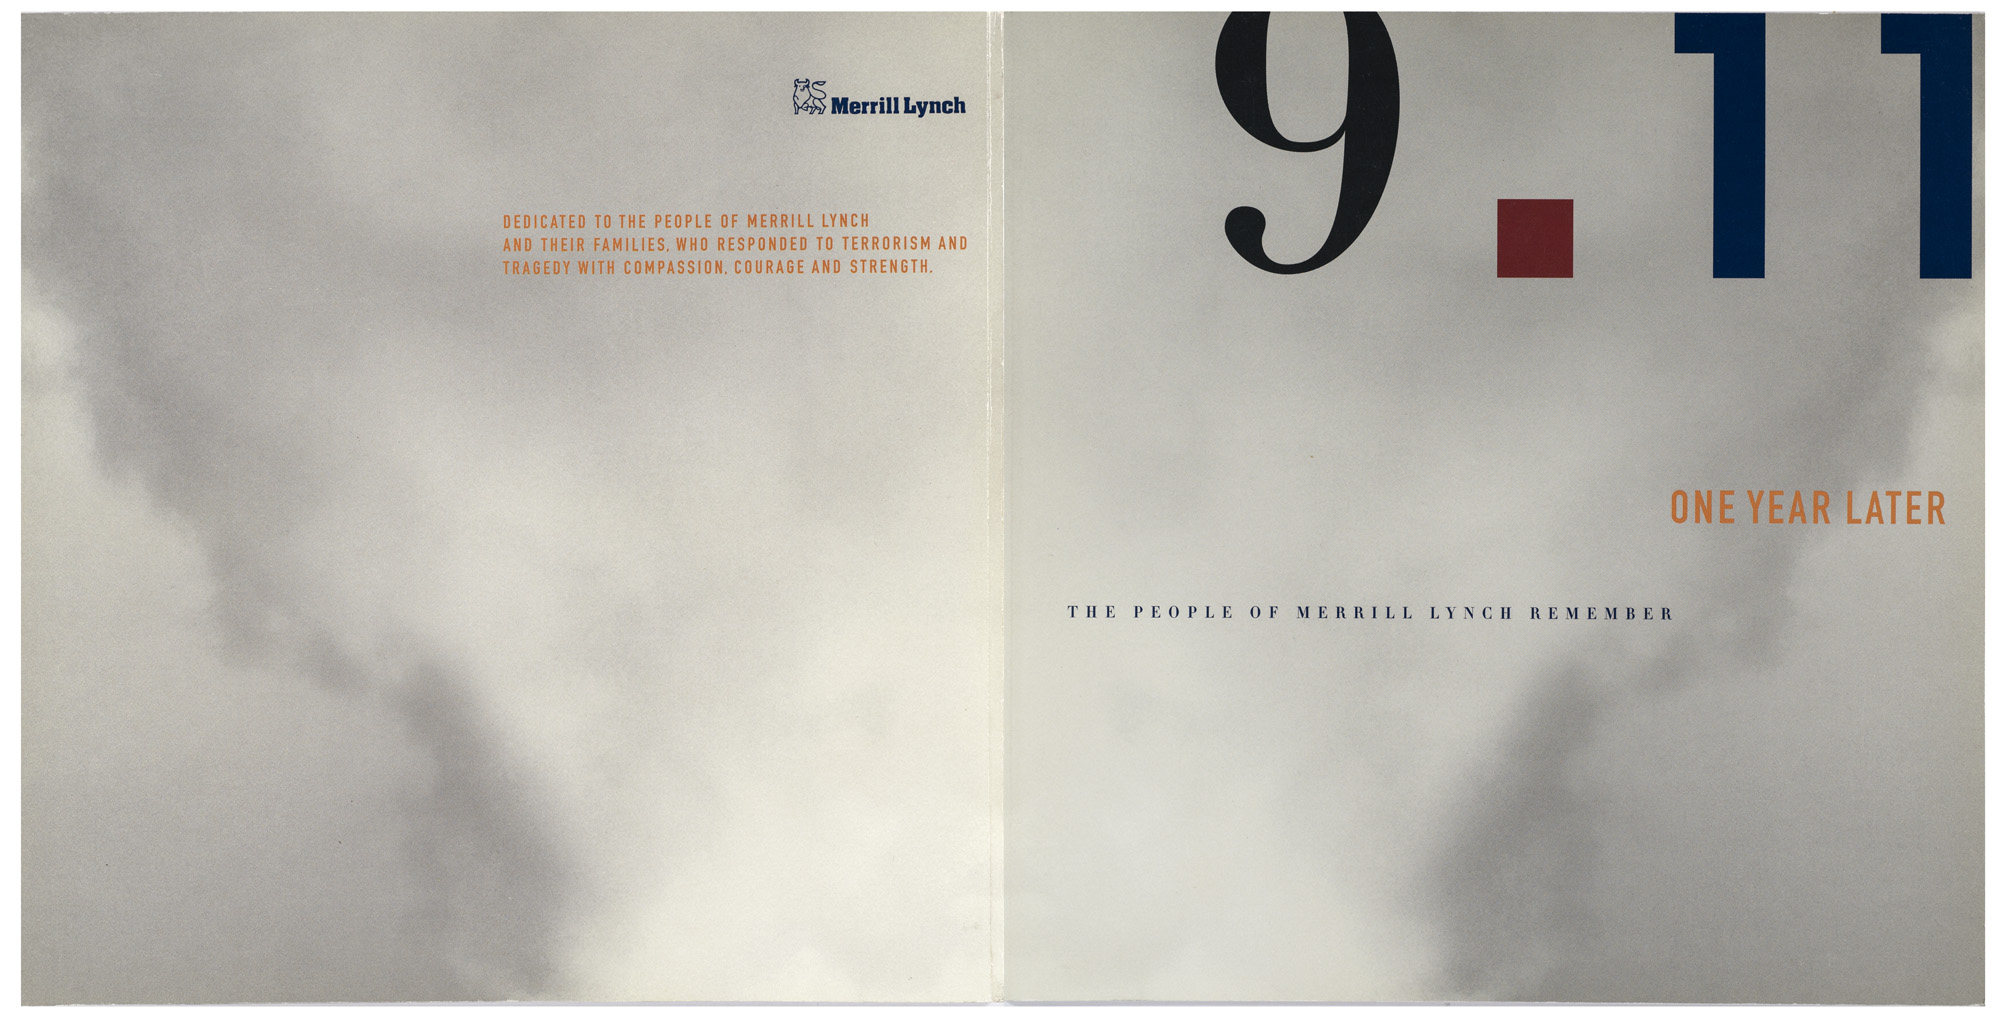 Client: Time Inc Custom PublishingProject: 9-11 Memorial Issue - Merrill Lynch Photo Researcher: Paula Gillen